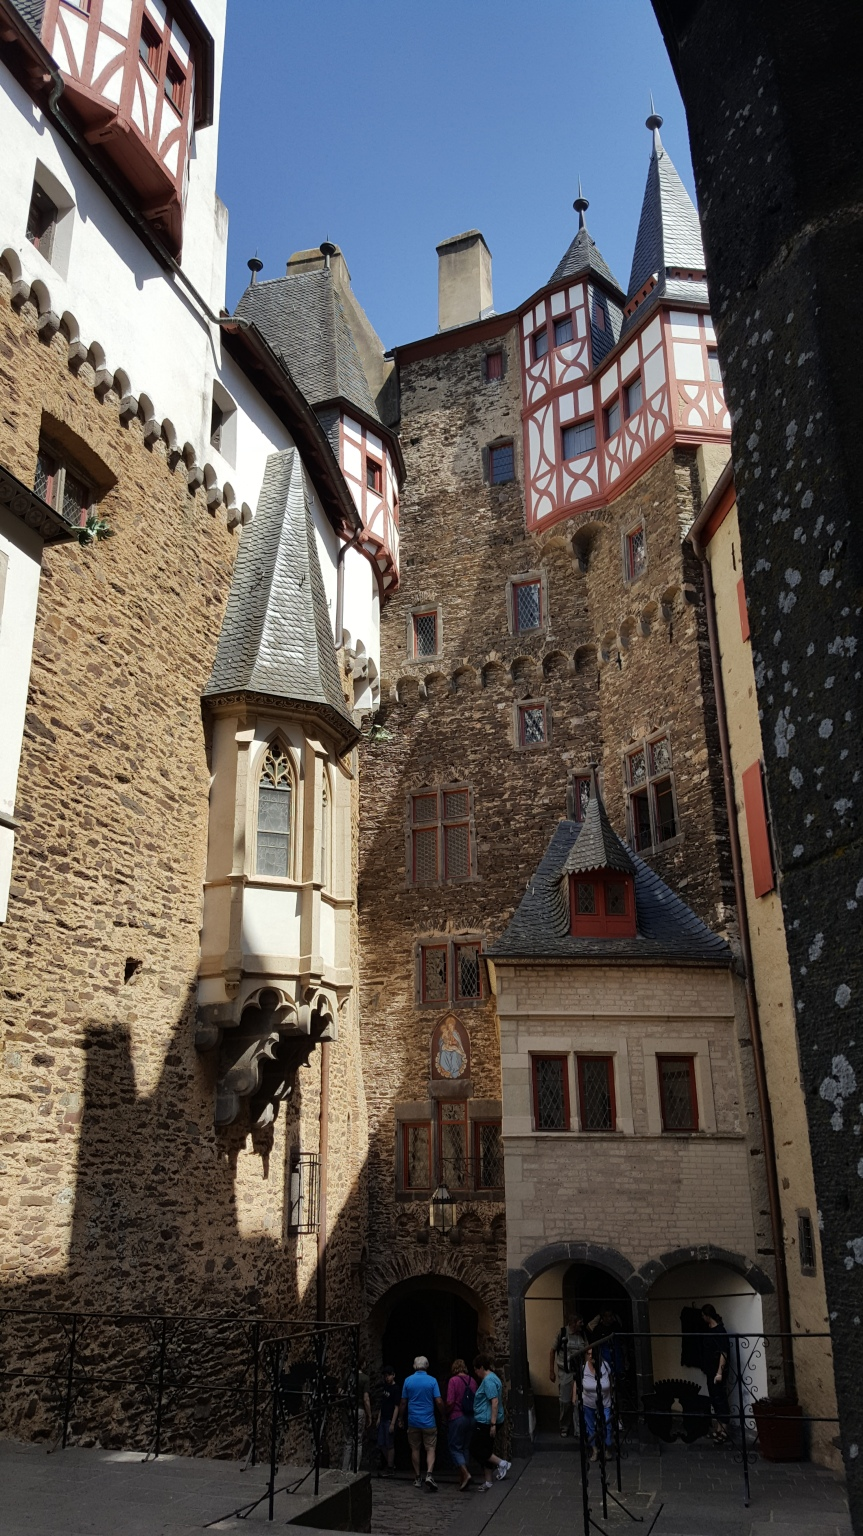 Interior courtyard at Eltz Castle. Photo by Dragonfly Leathrum